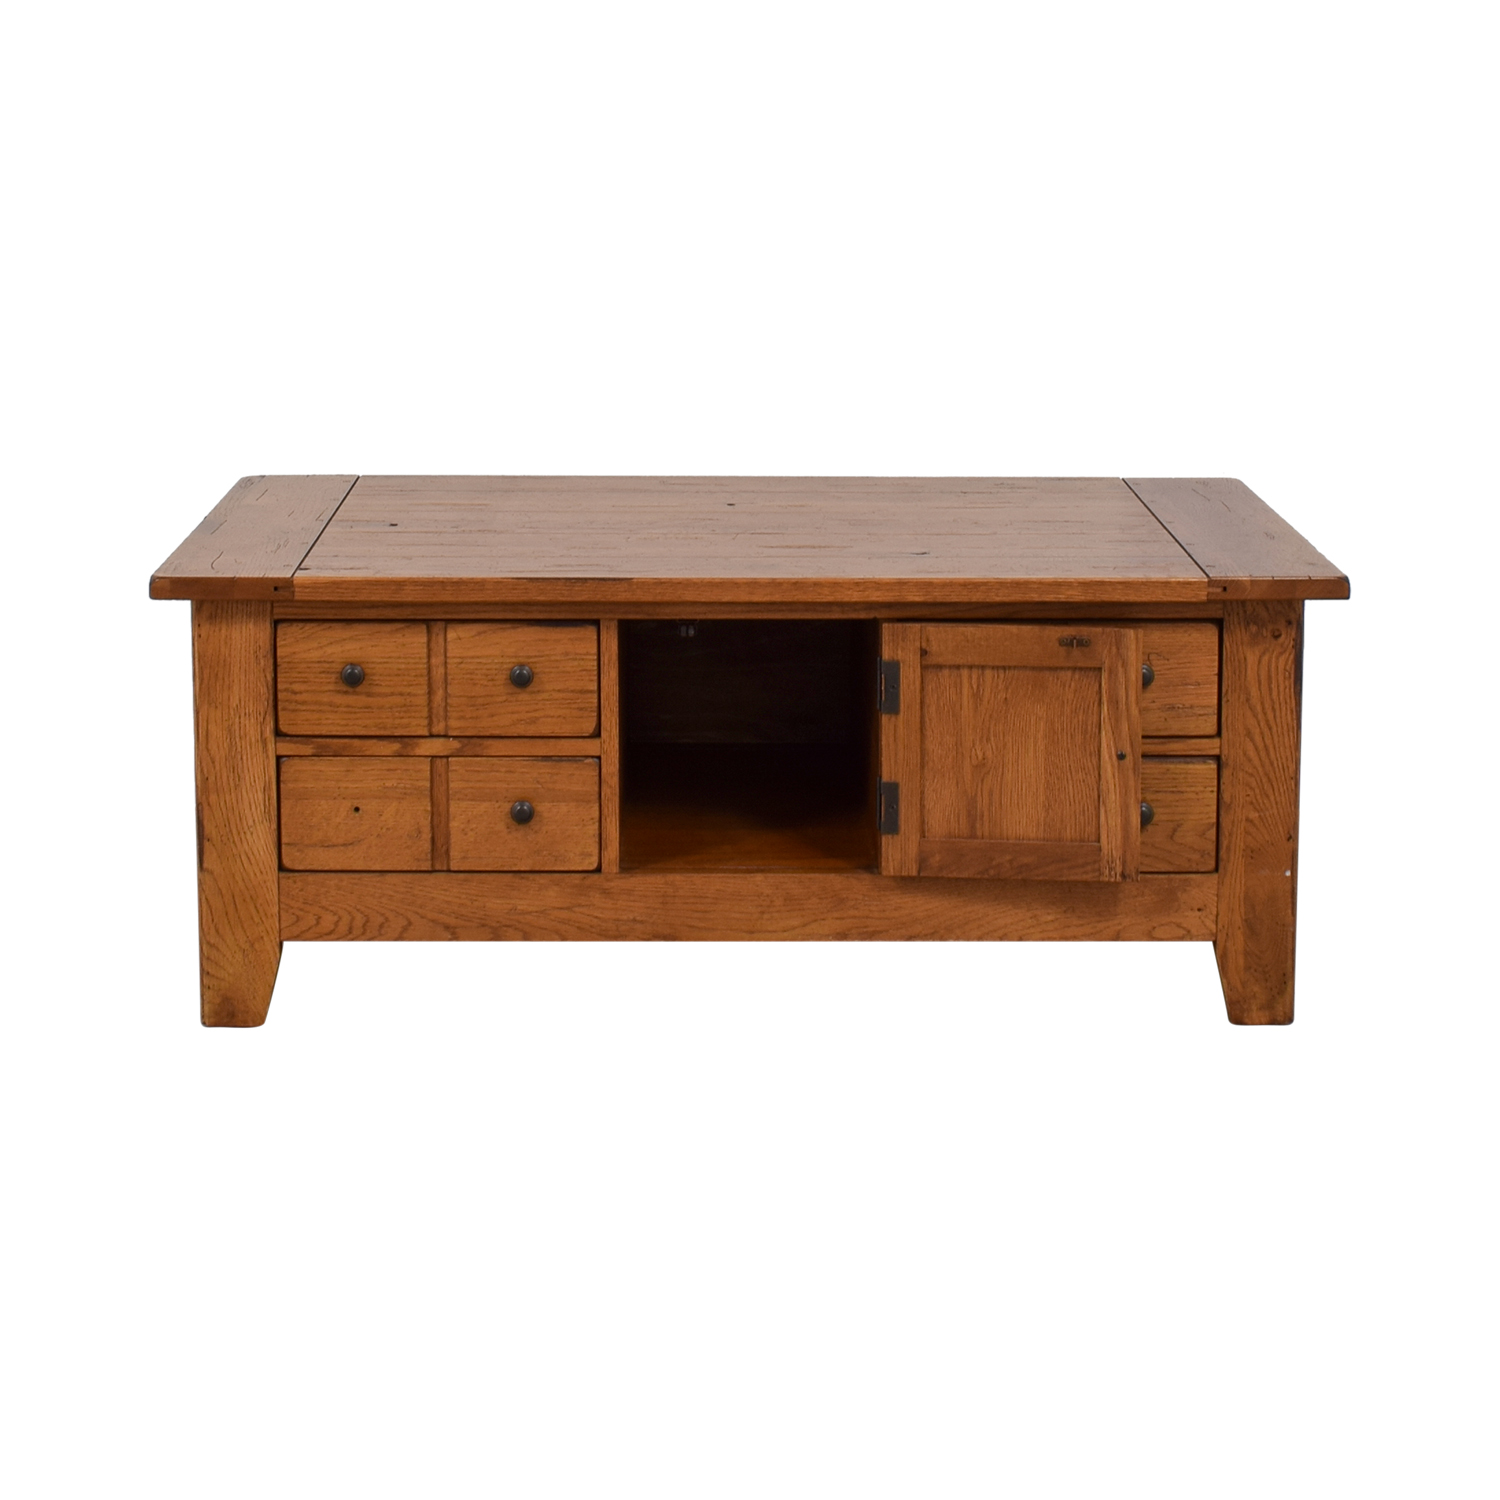 Broyhill Broyhill Natural Wood Coffee Table with Storage